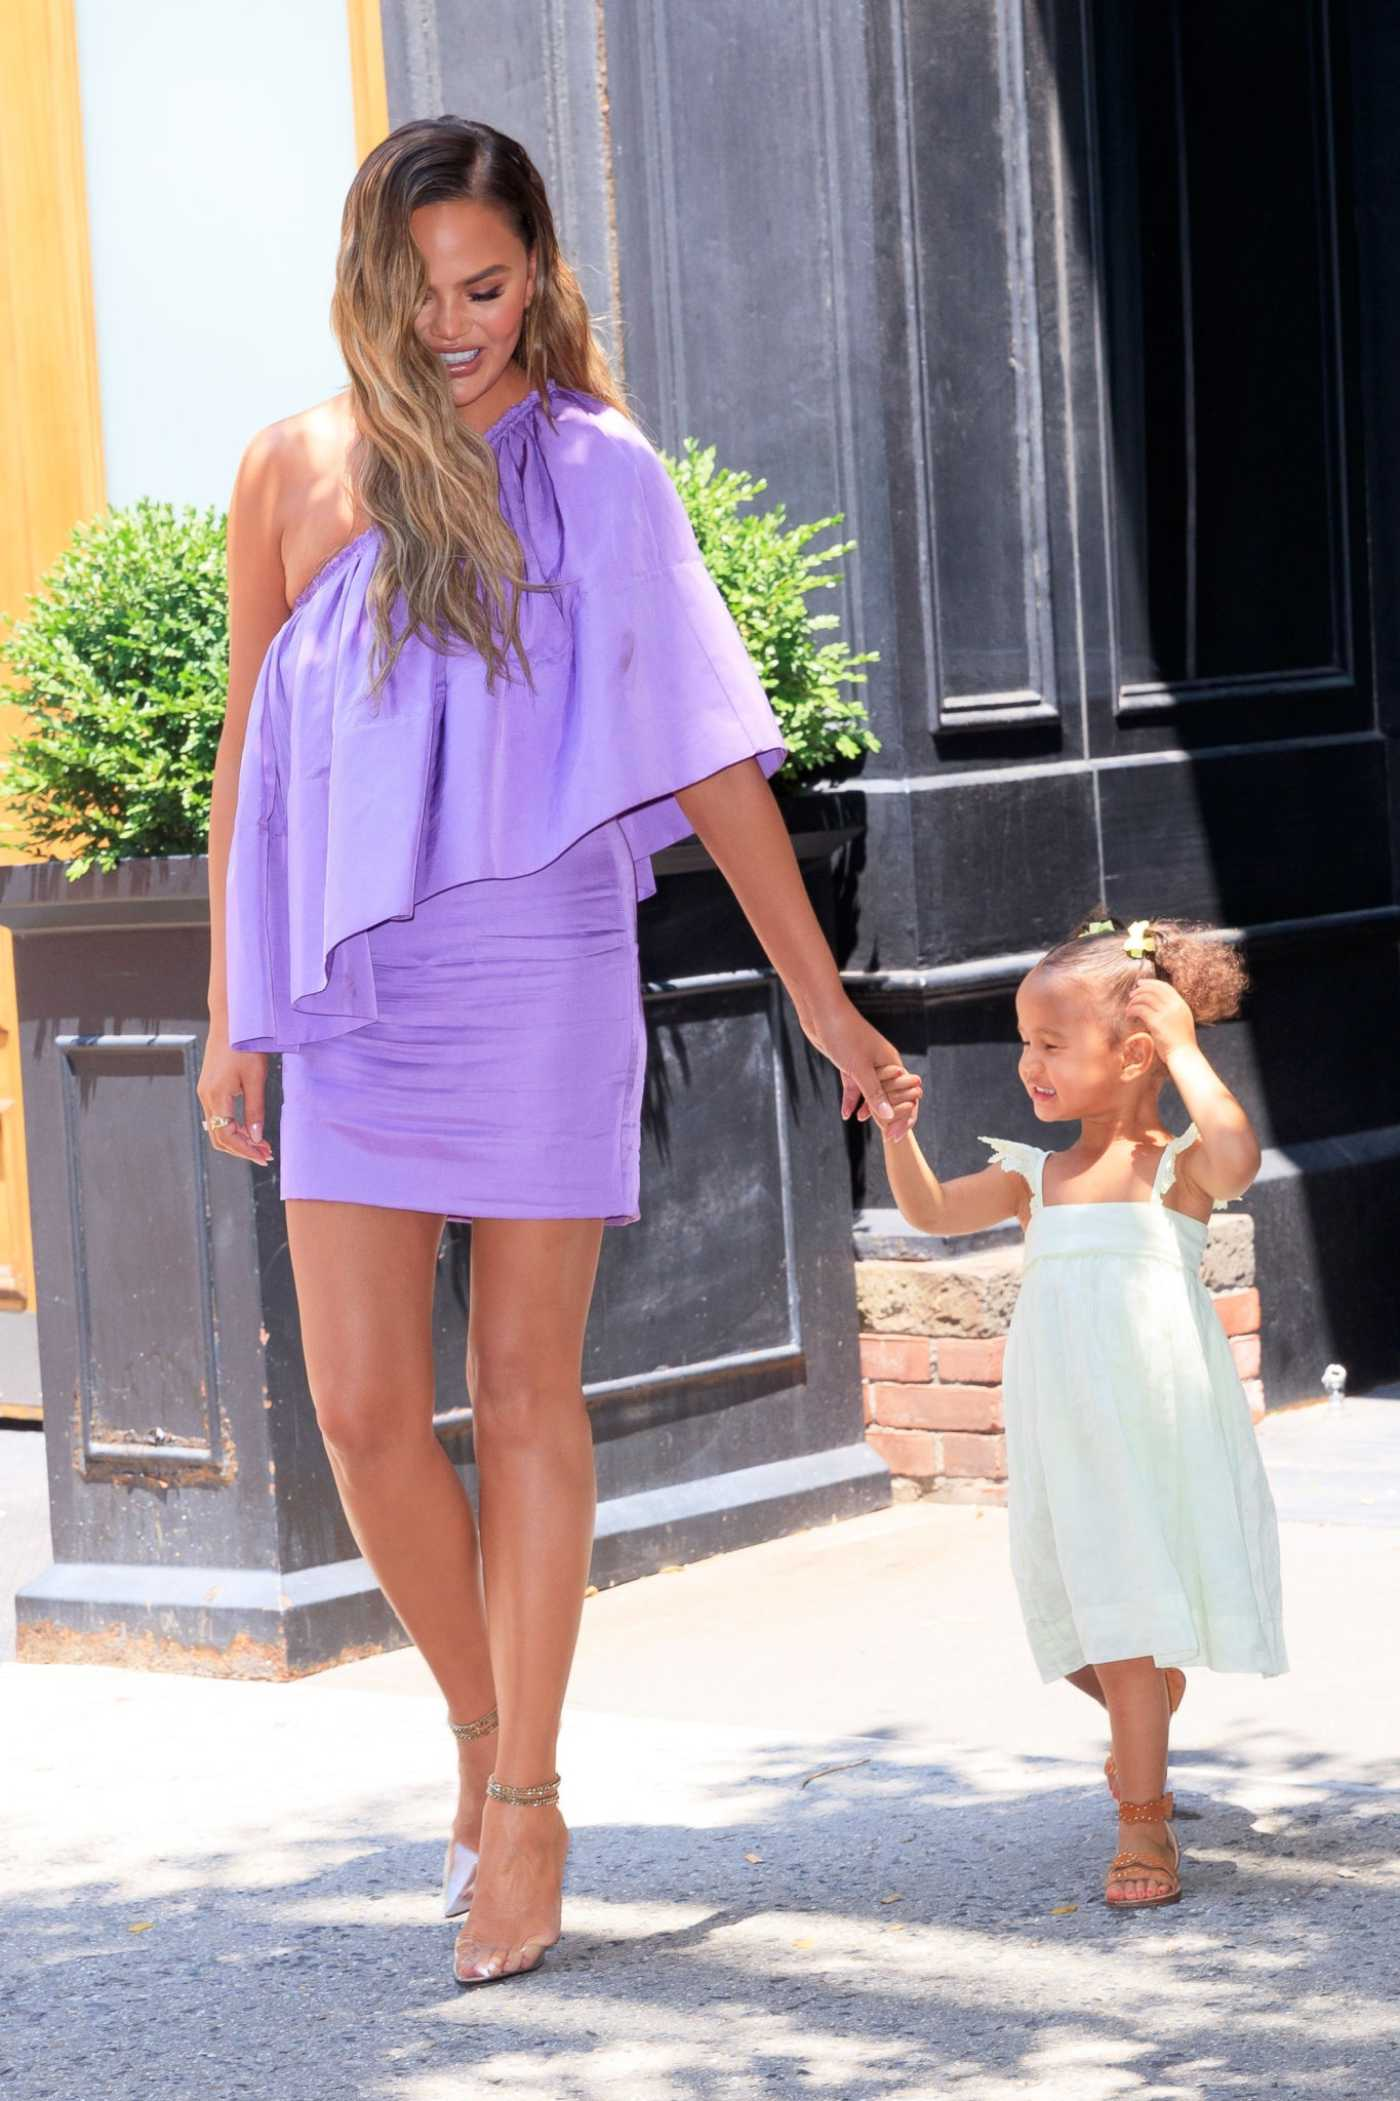 Chrissy Teigen in a Purple Dress Was Seen Out in New York City 06/23/2019